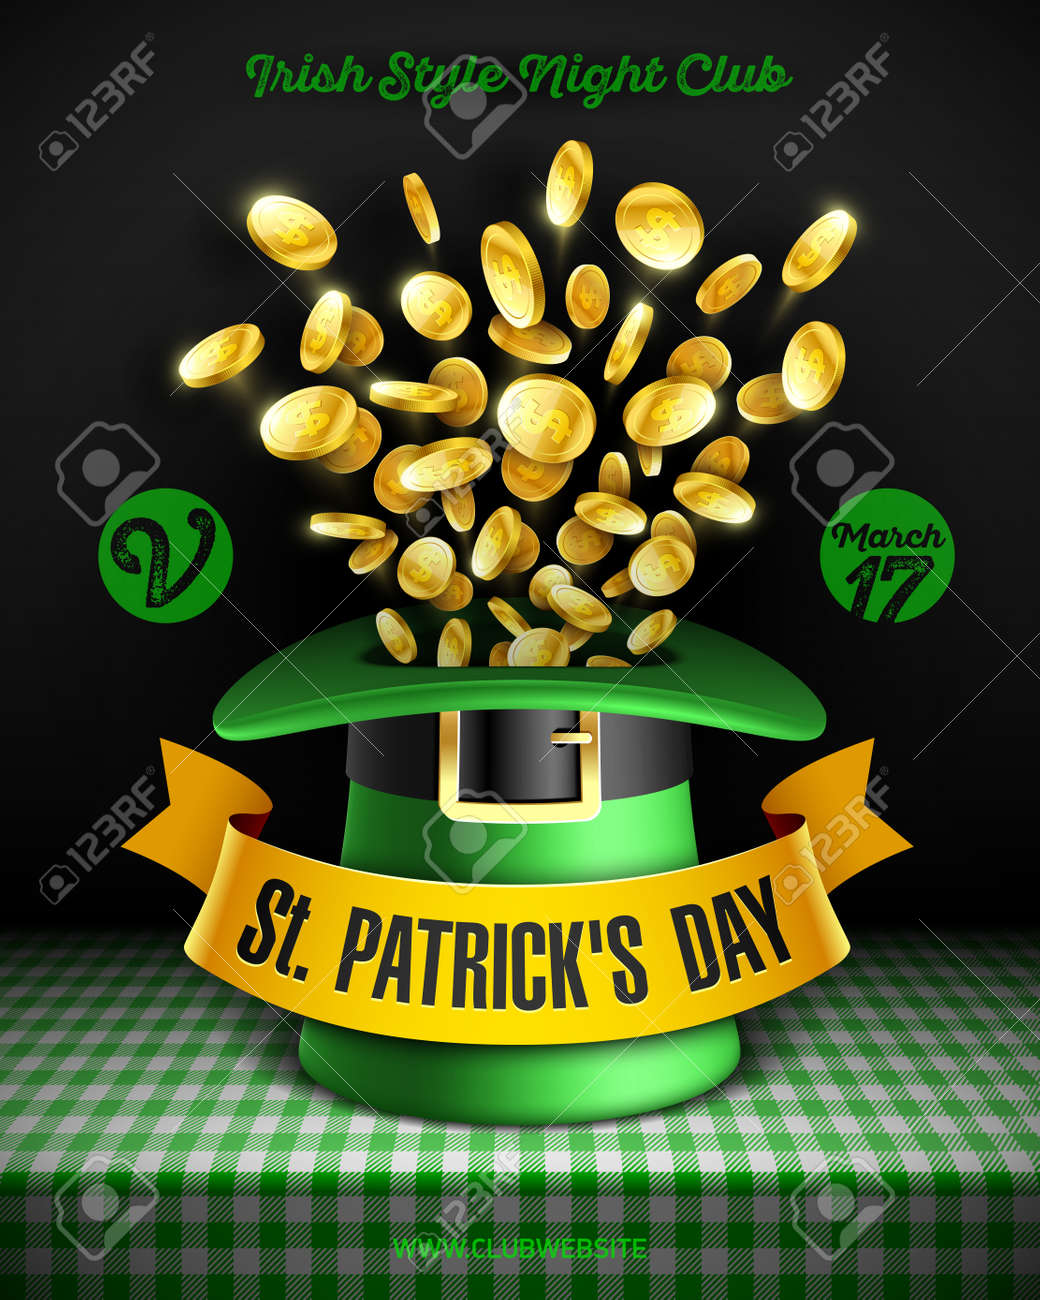 saint patrick s day party poster design 17 march feast of saint